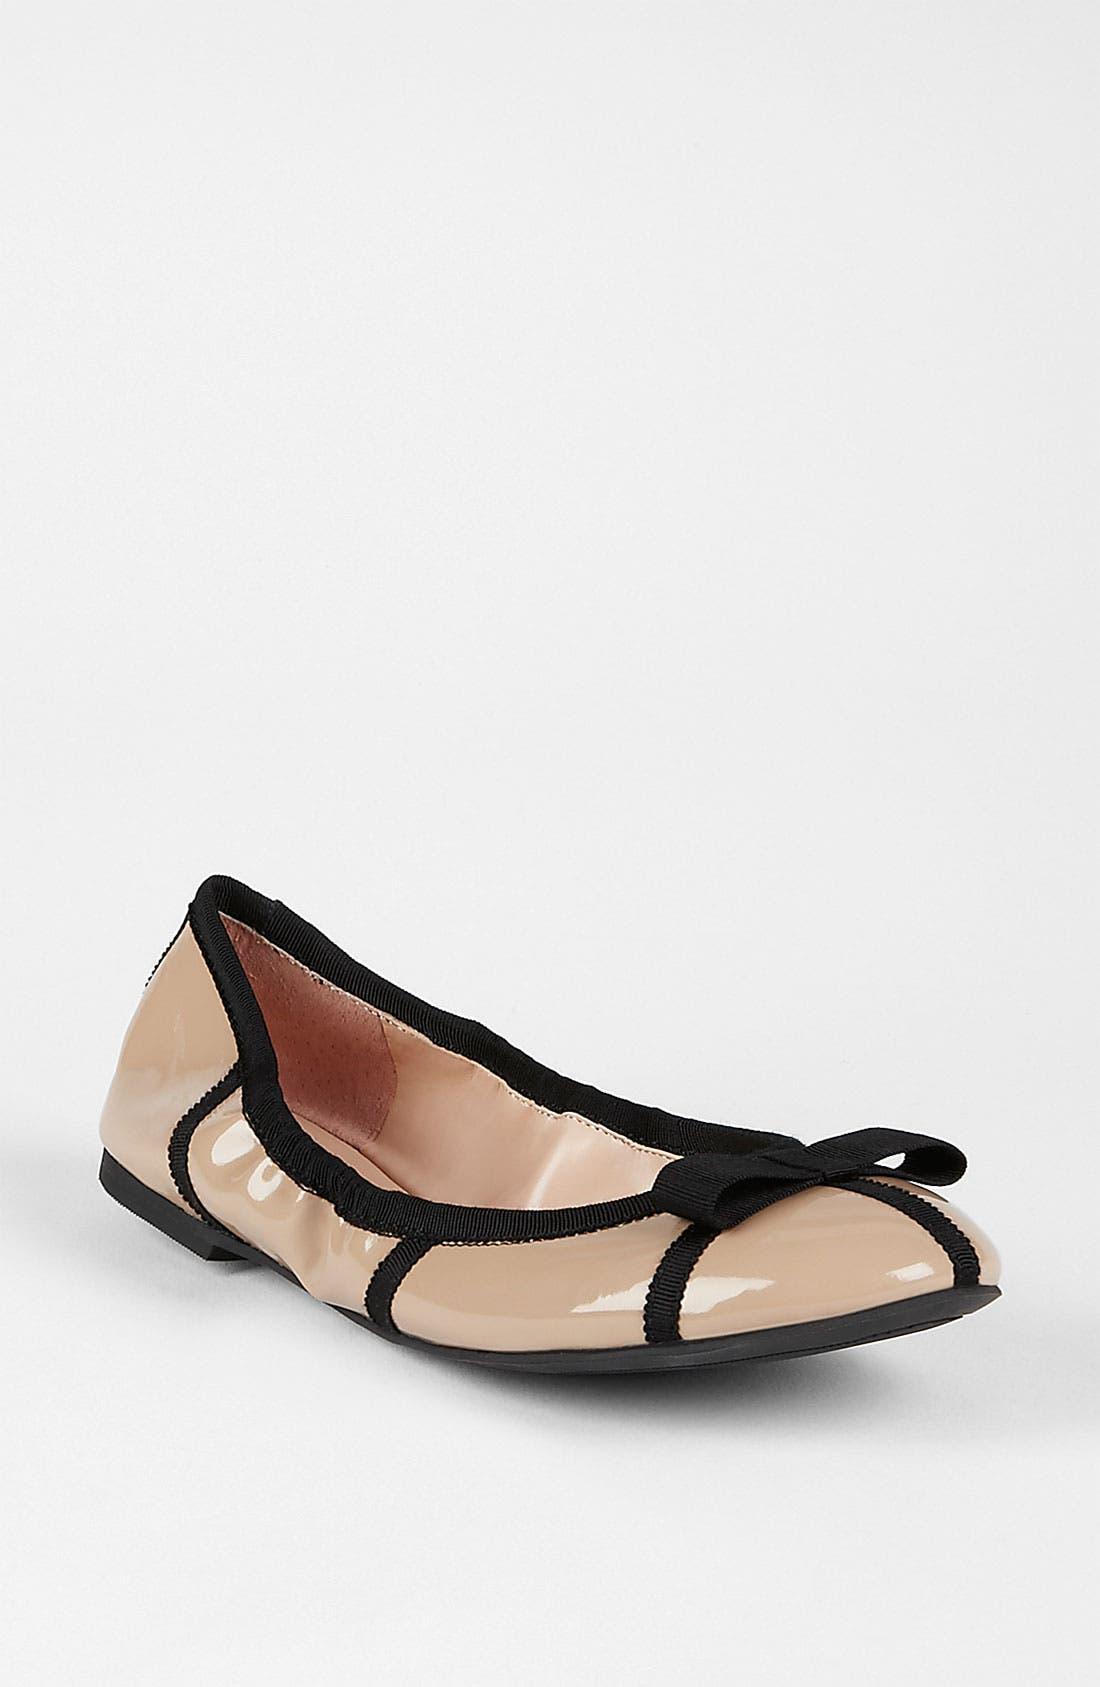 Alternate Image 1 Selected - Sole Society 'Melody' Flat